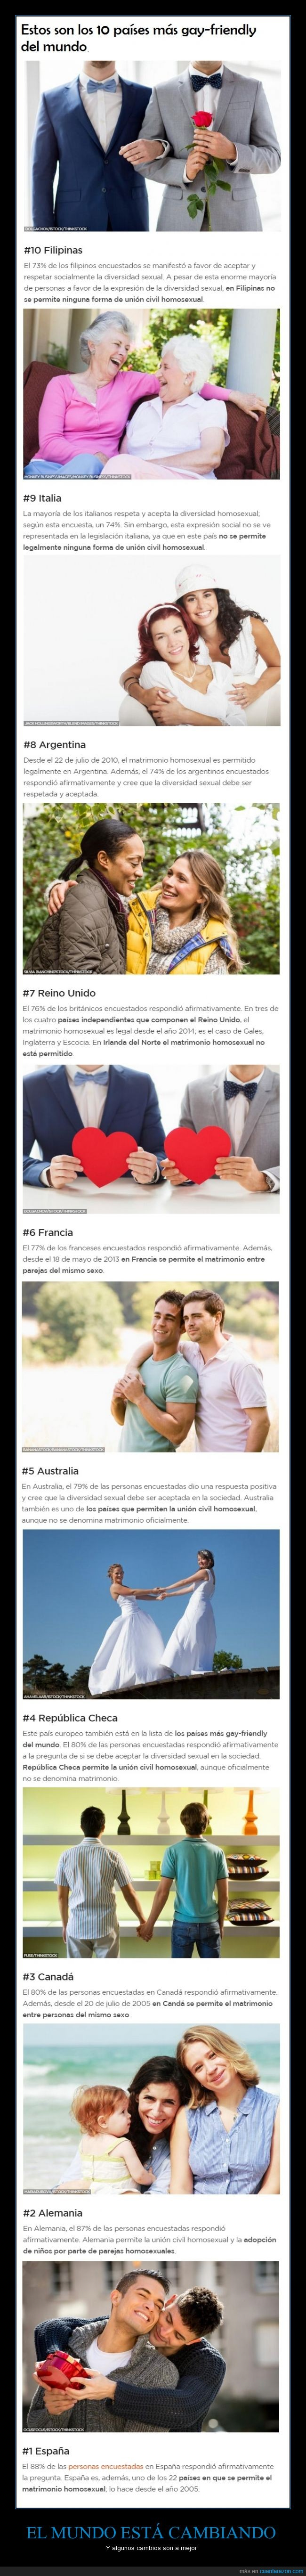 Alemania,Argentina,Australia,Canada,España,Filipinas,Francia,Gay-friendly,Italia,Reino Unido,Republica checa